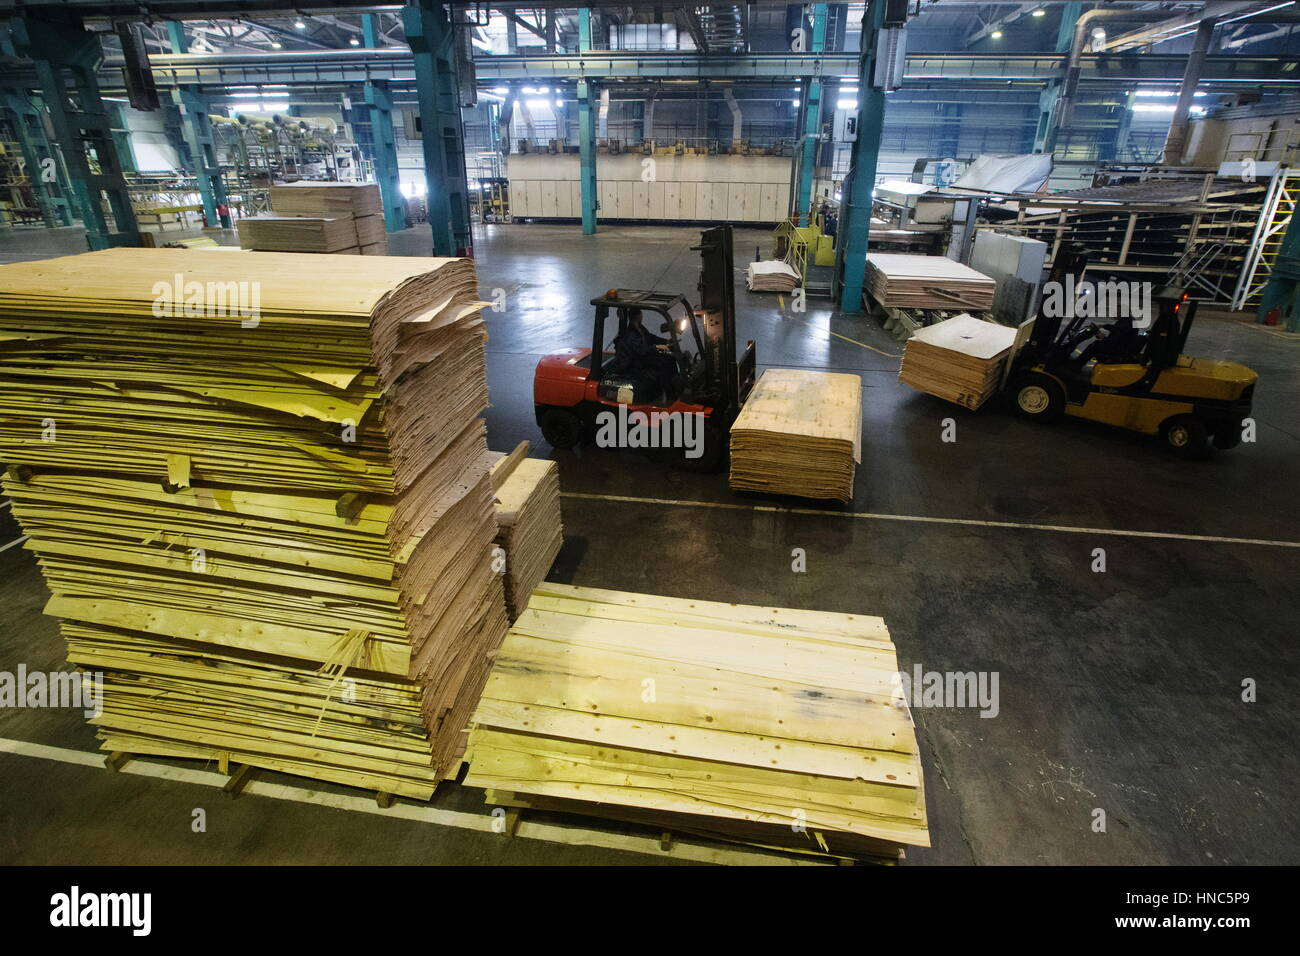 Torzhok, Tver Region, Russia. 10th Feb, 2017. Producing veneer at the Talion Arbor high-technology timber plant - Stock Image